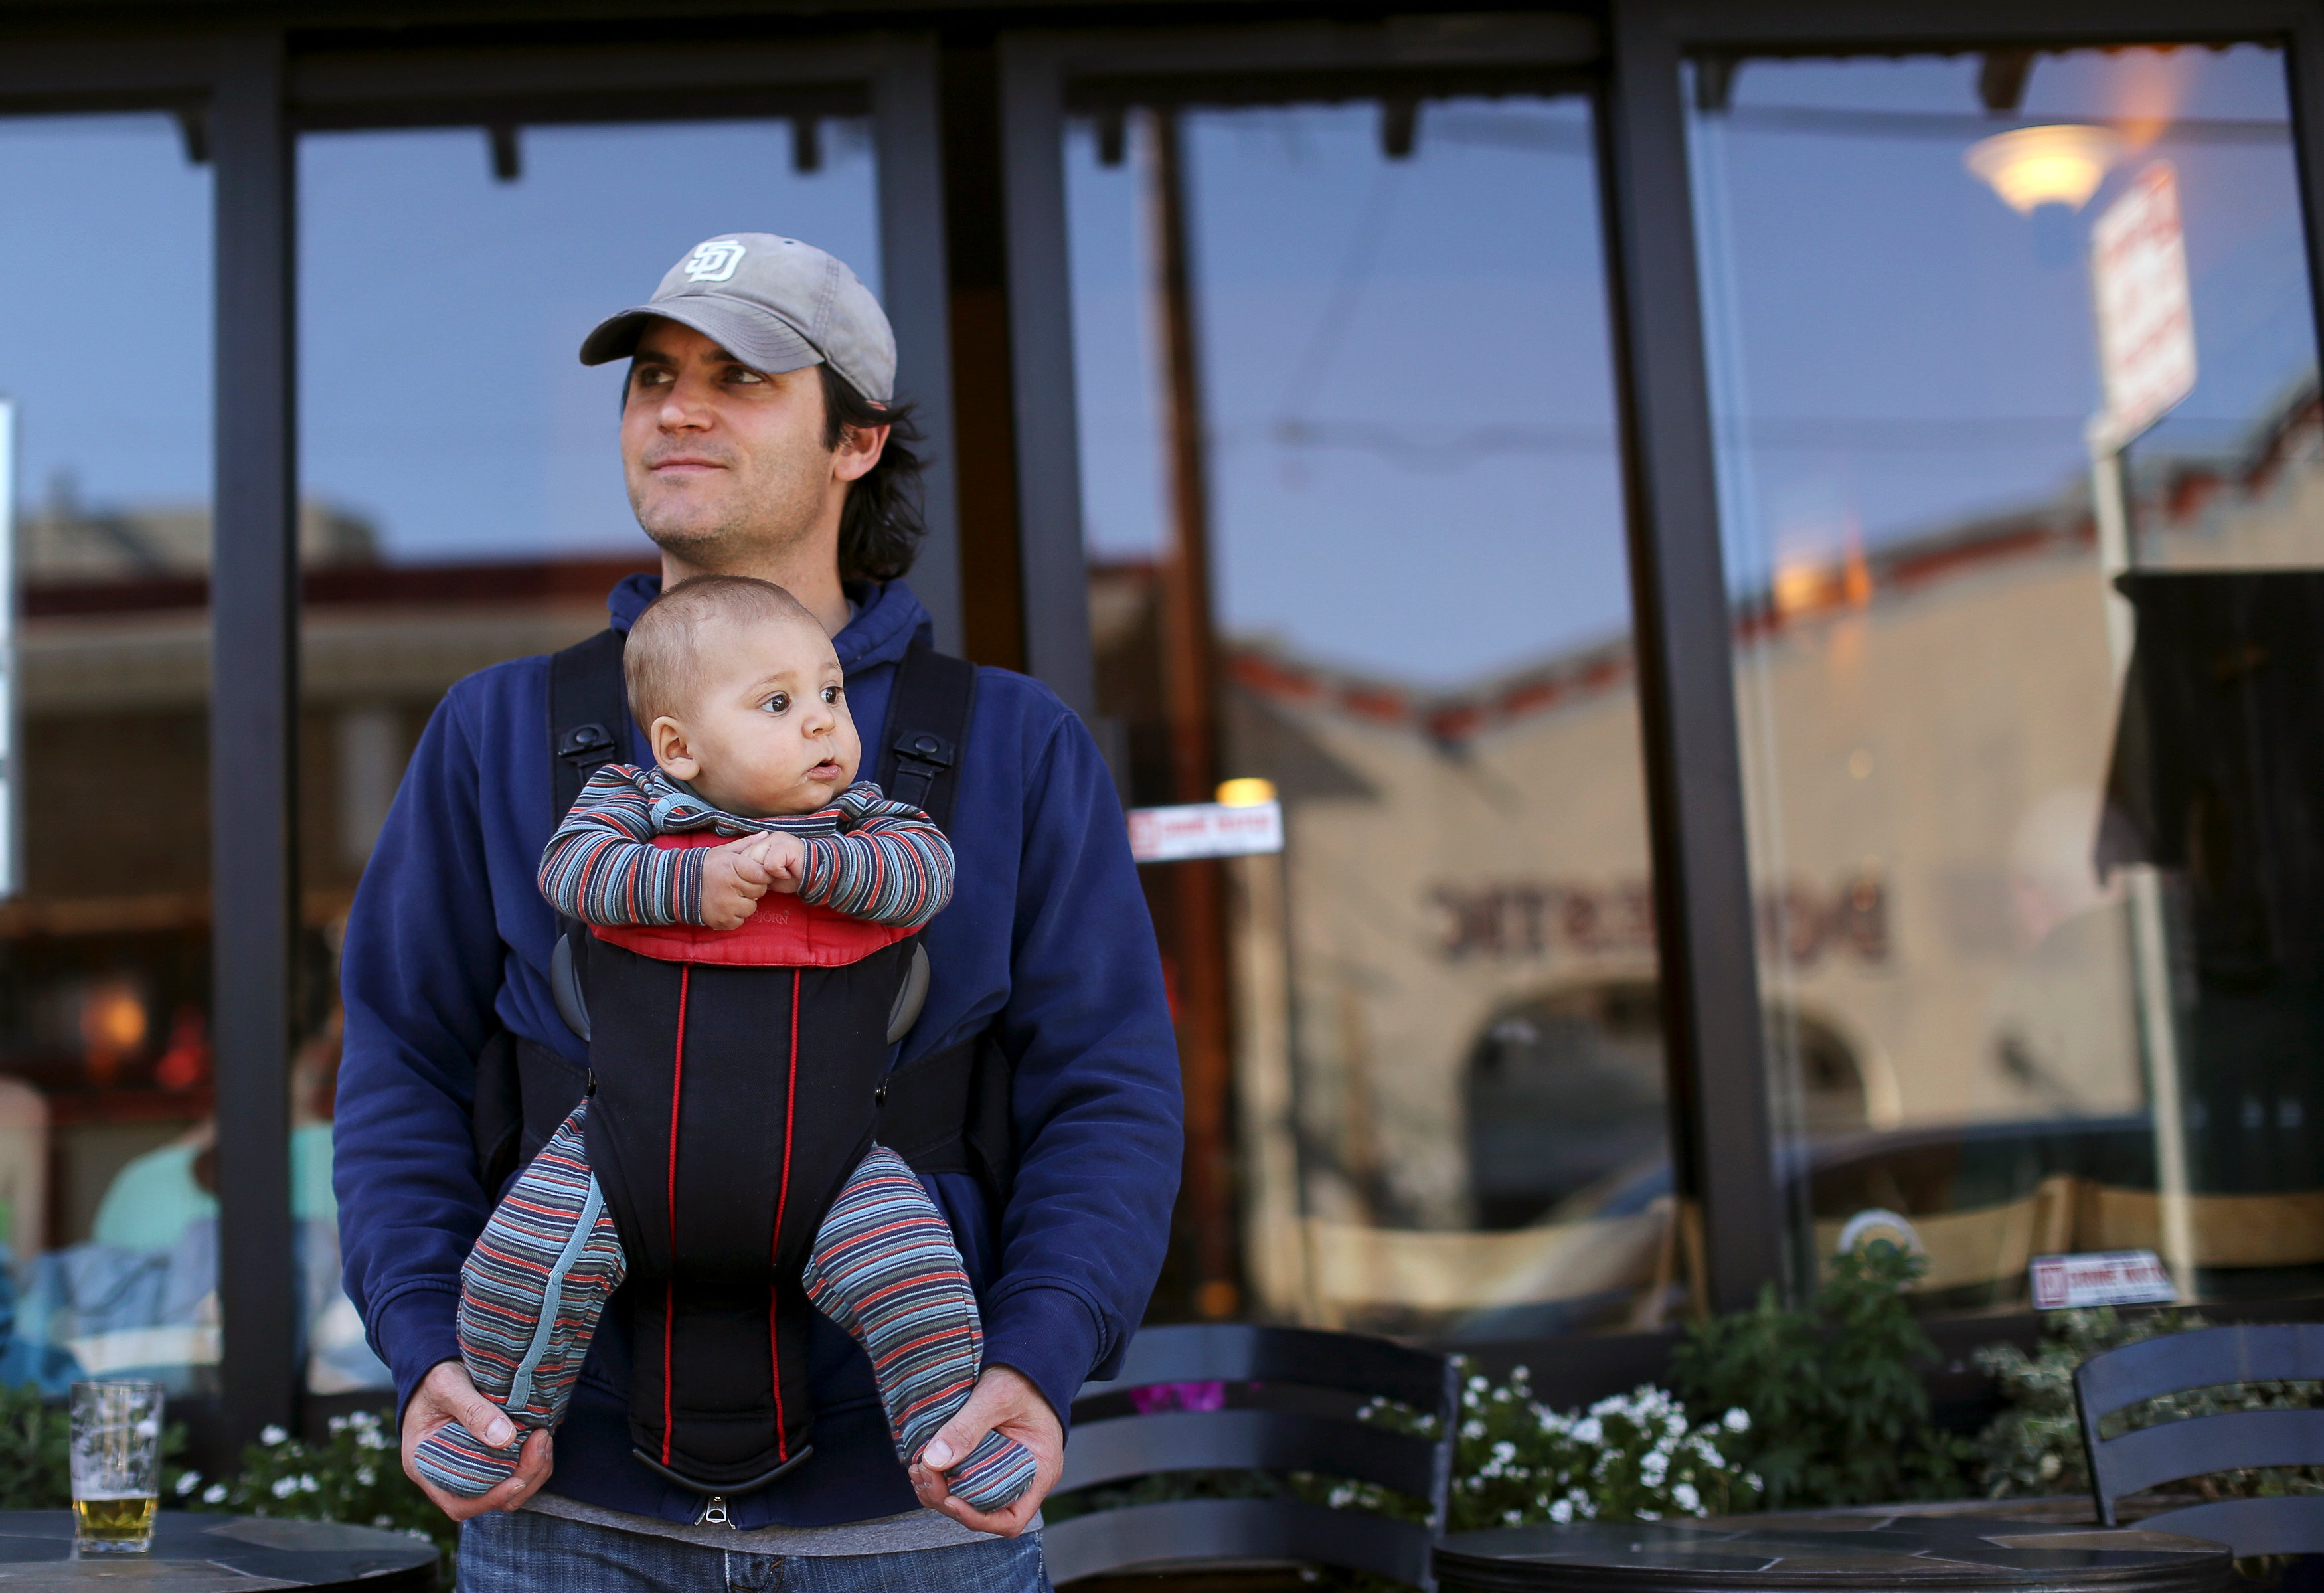 Steve Caniglia holds his six-month-old son, Boden, in San Francisco, California February 19, 2014.